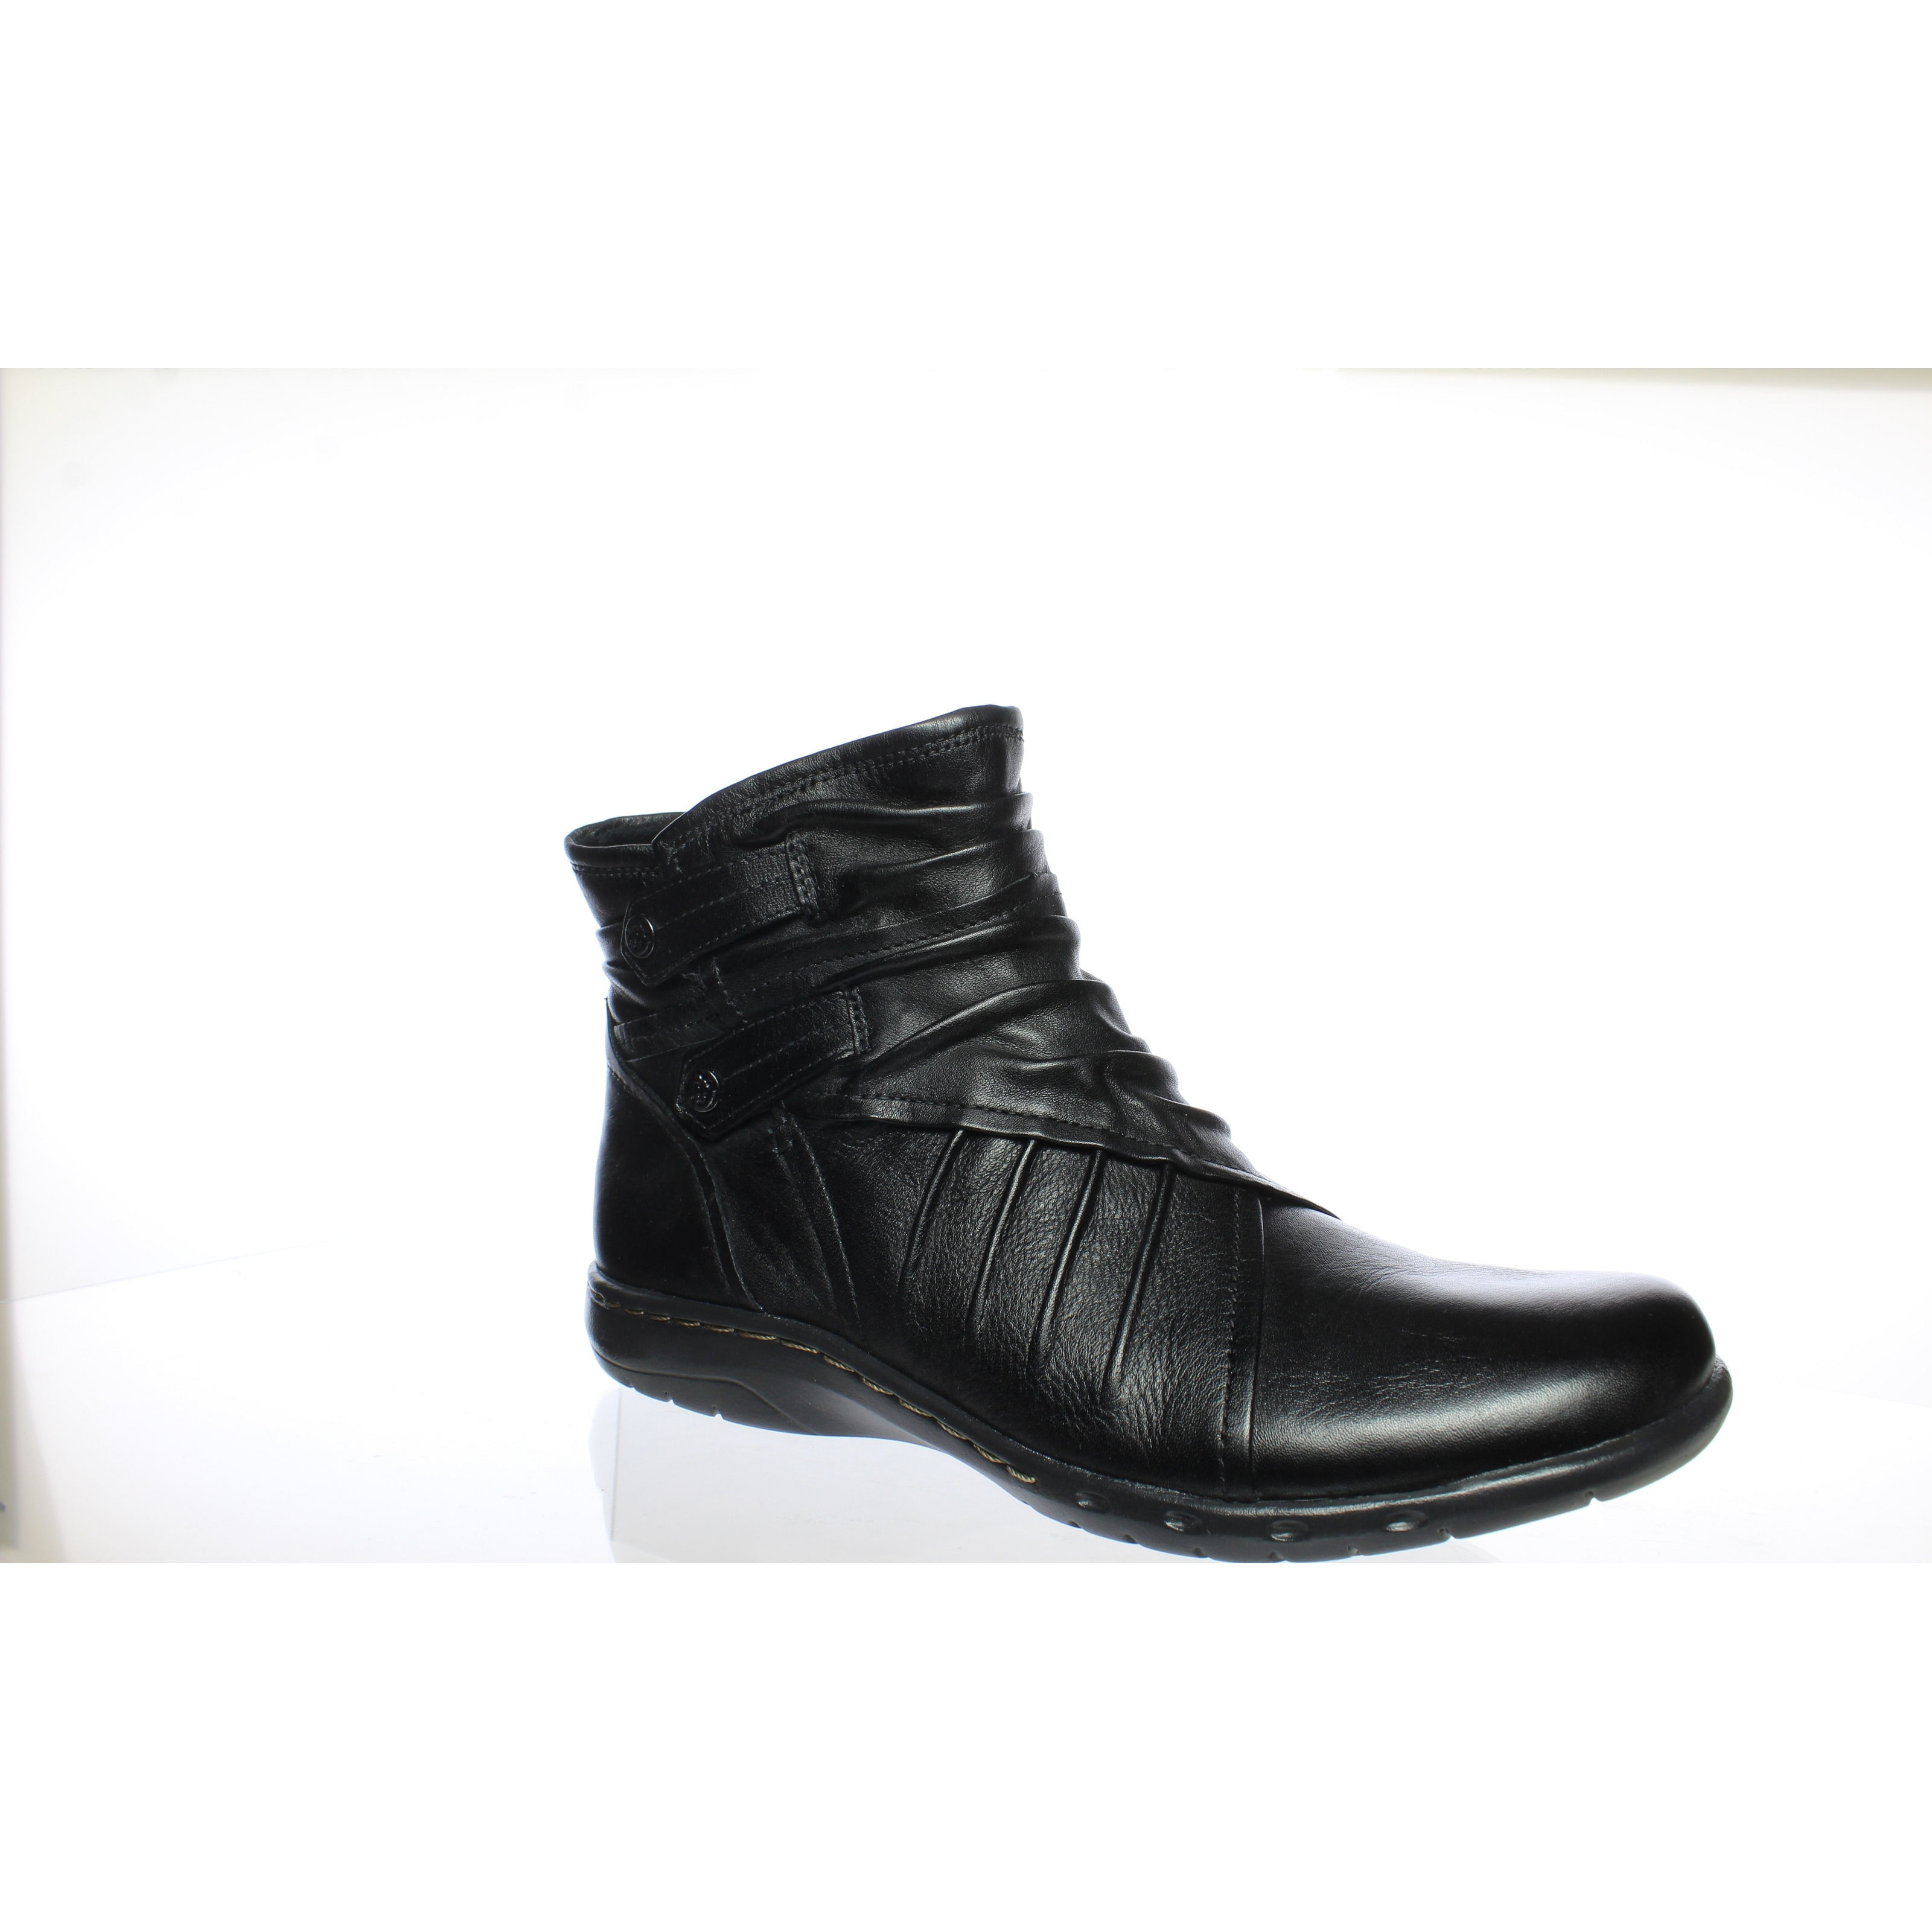 Pandora Black Ankle Boots Size 7 (AA,N